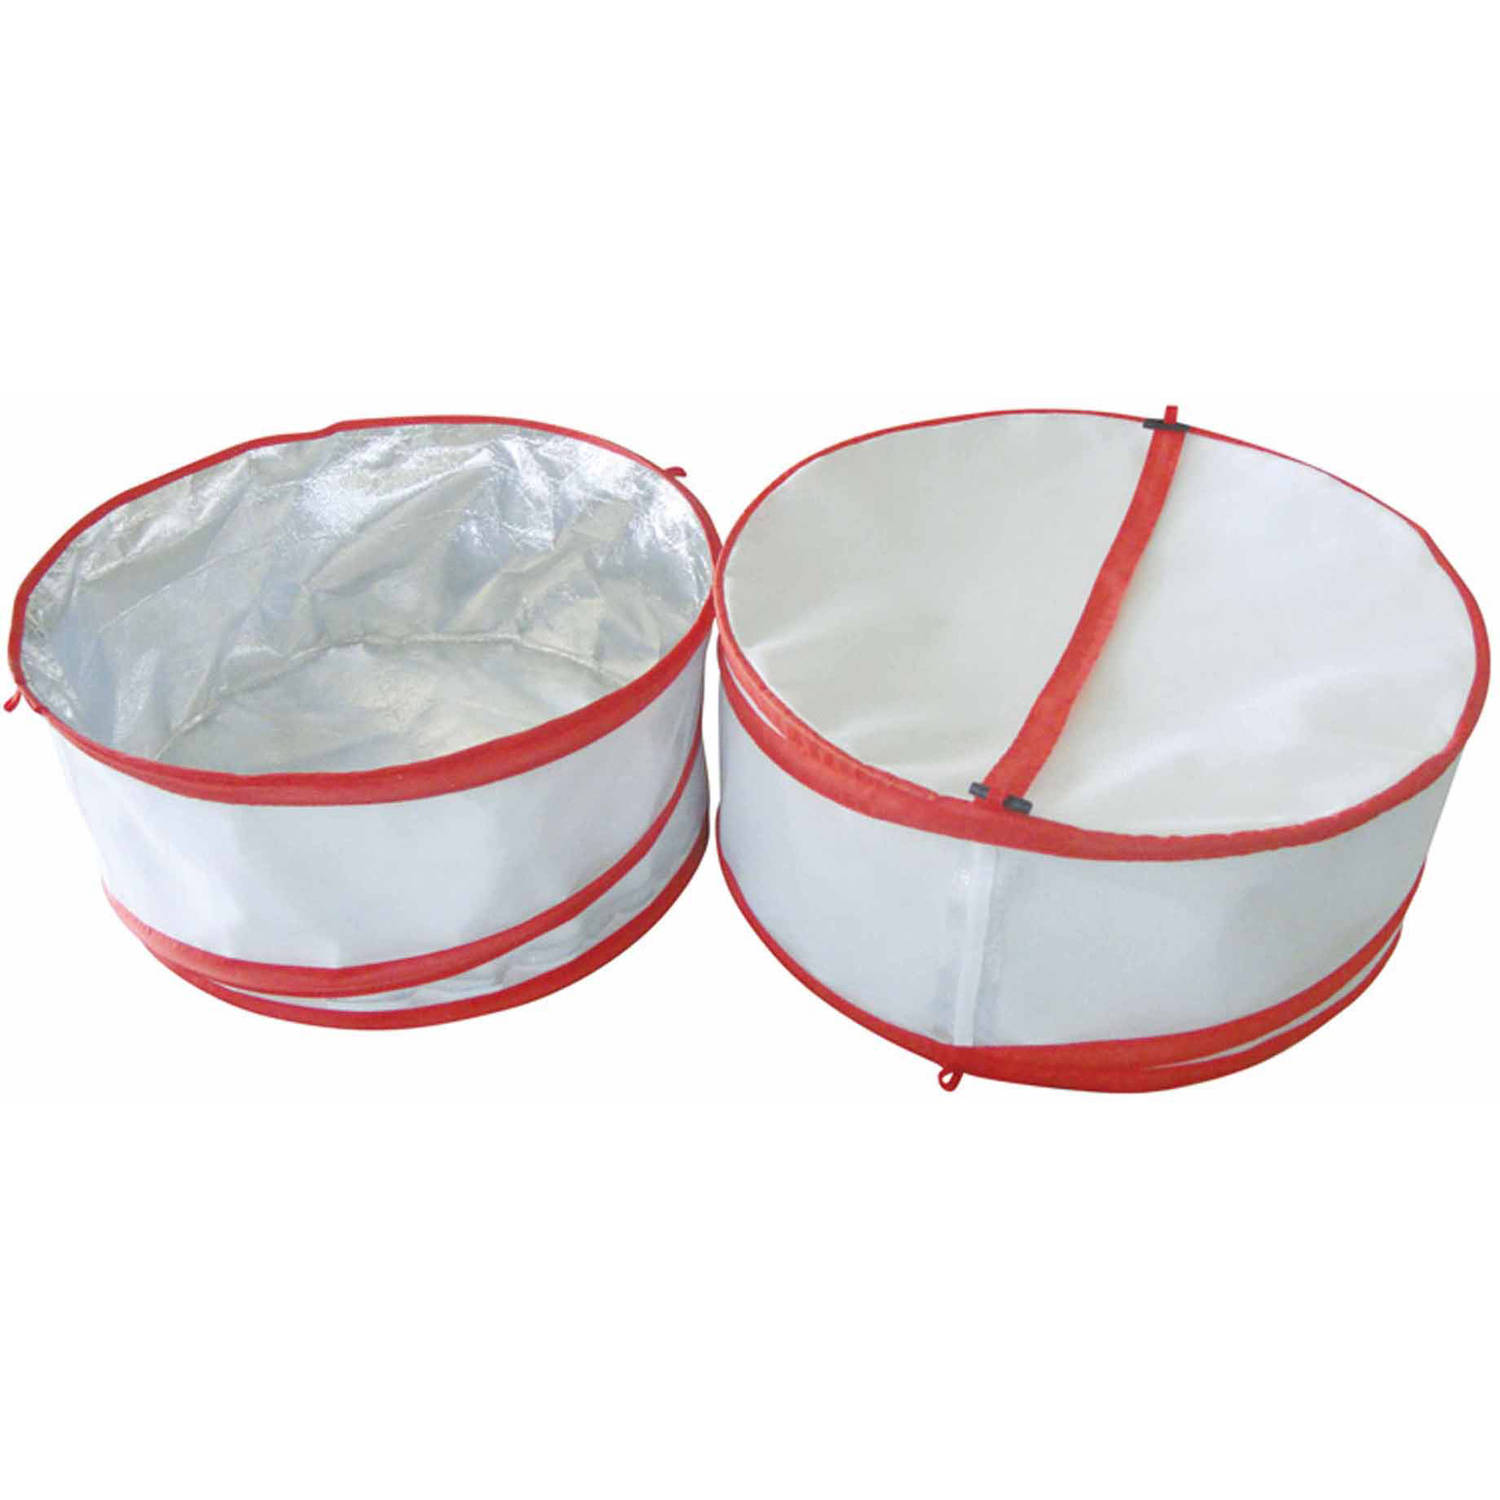 Ming's Mark Insulated Collapsible Food Covers, 2-Pack